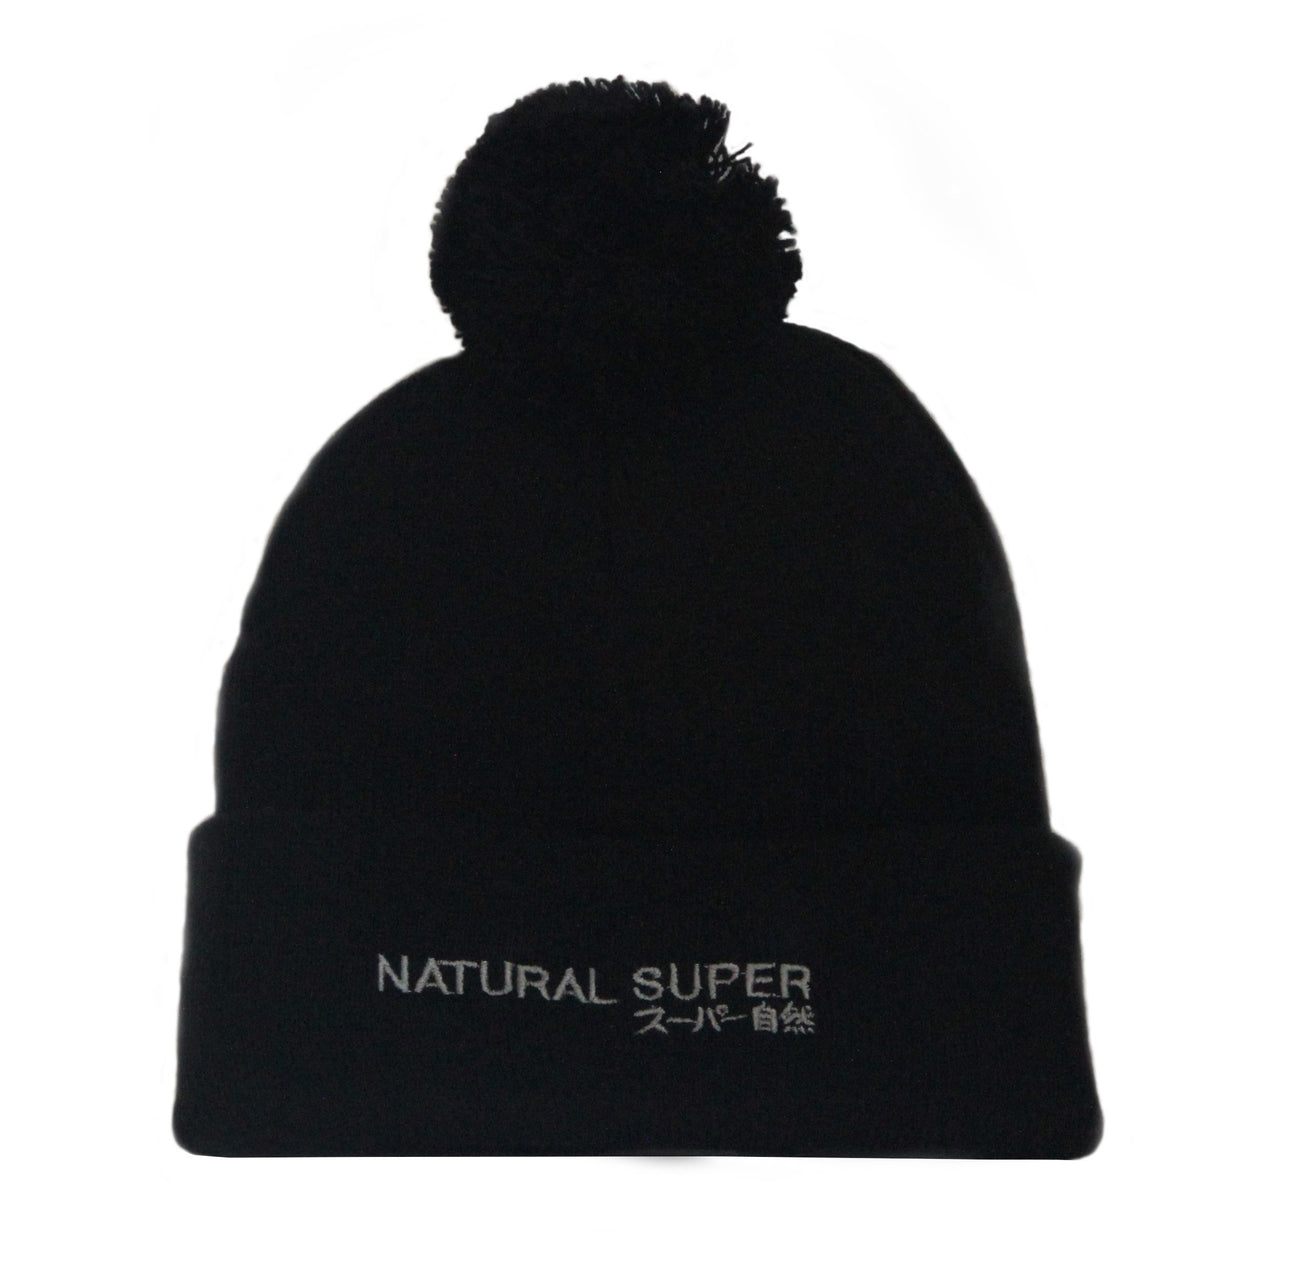 Black Knit Cap